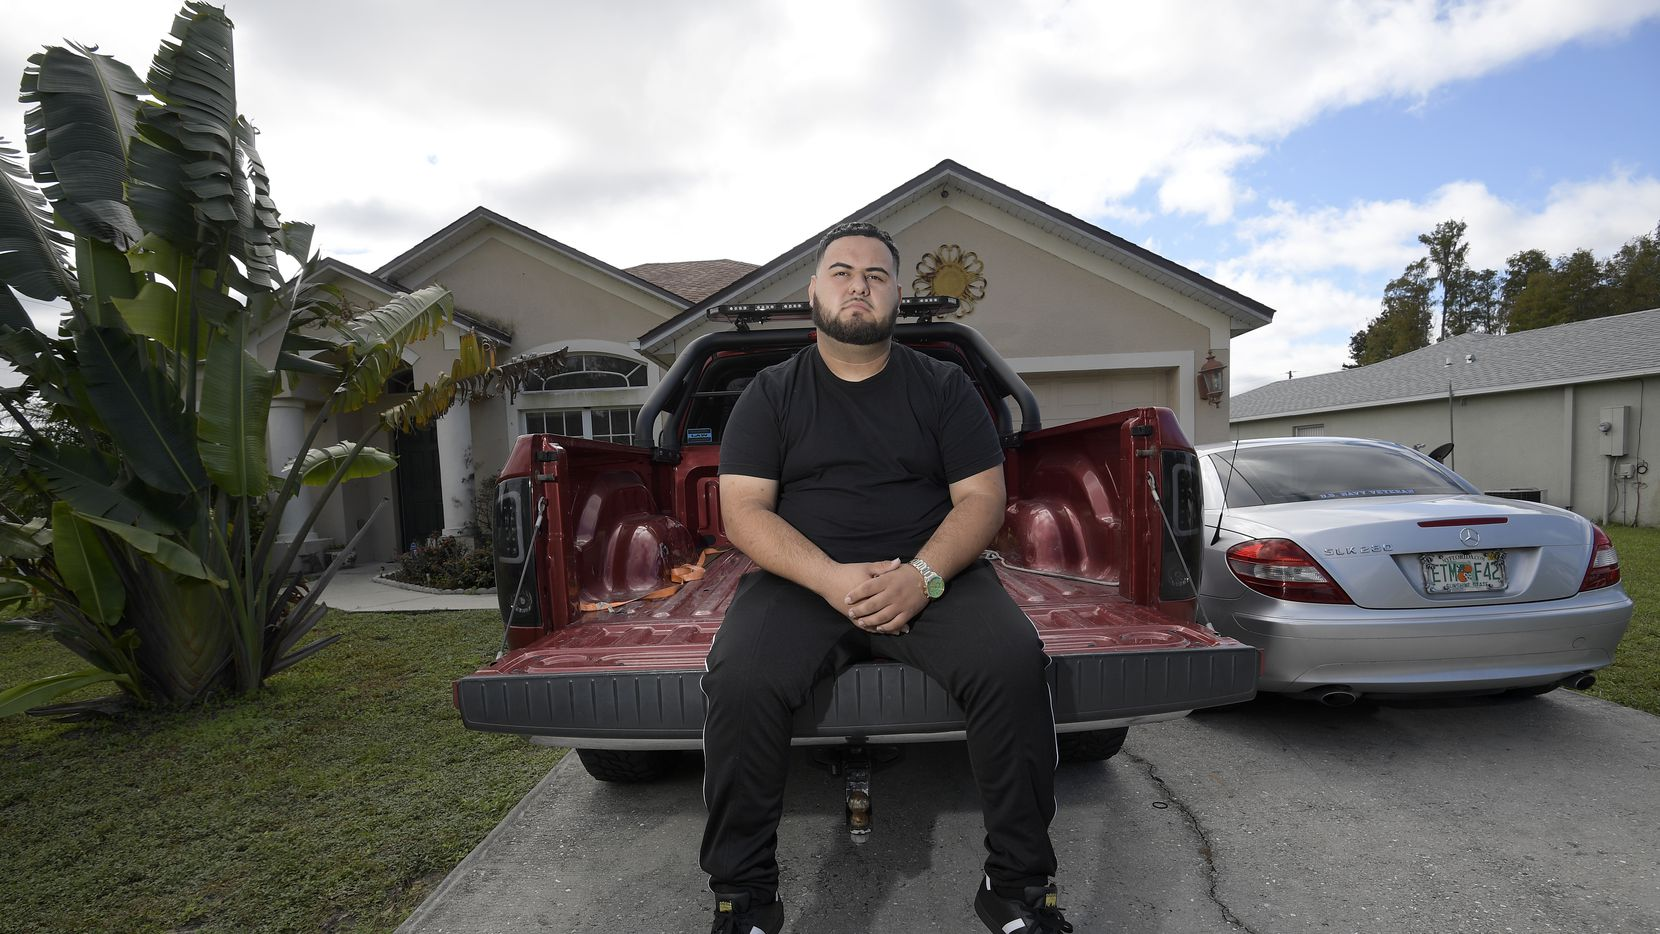 Brandon Gonzales has moved in with his mother in Poinciana, Fla., after fleeing unwanted notoriety after a mass shooting in his hometown of Greenville.